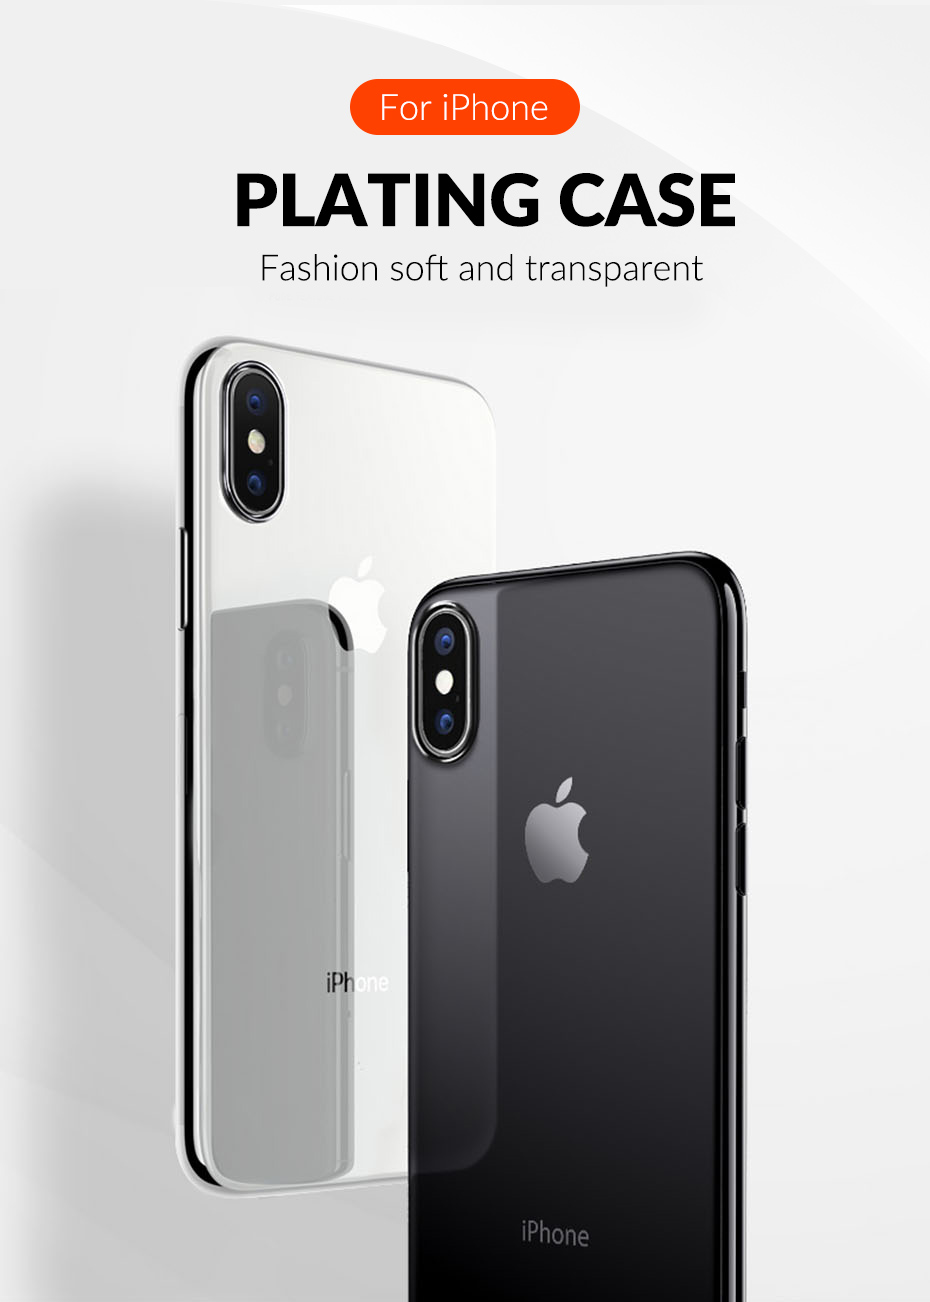 iphone-case-silicon-plating_01